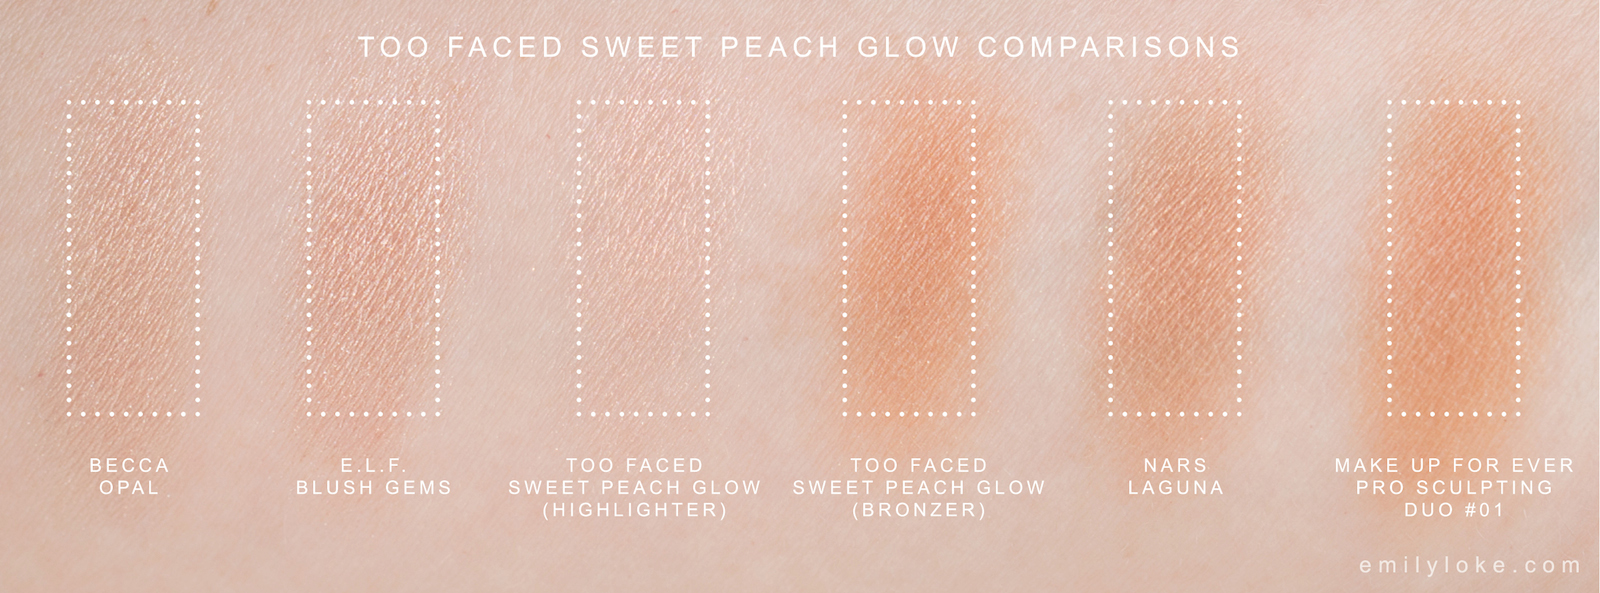 too faced sweet peach glow swatches